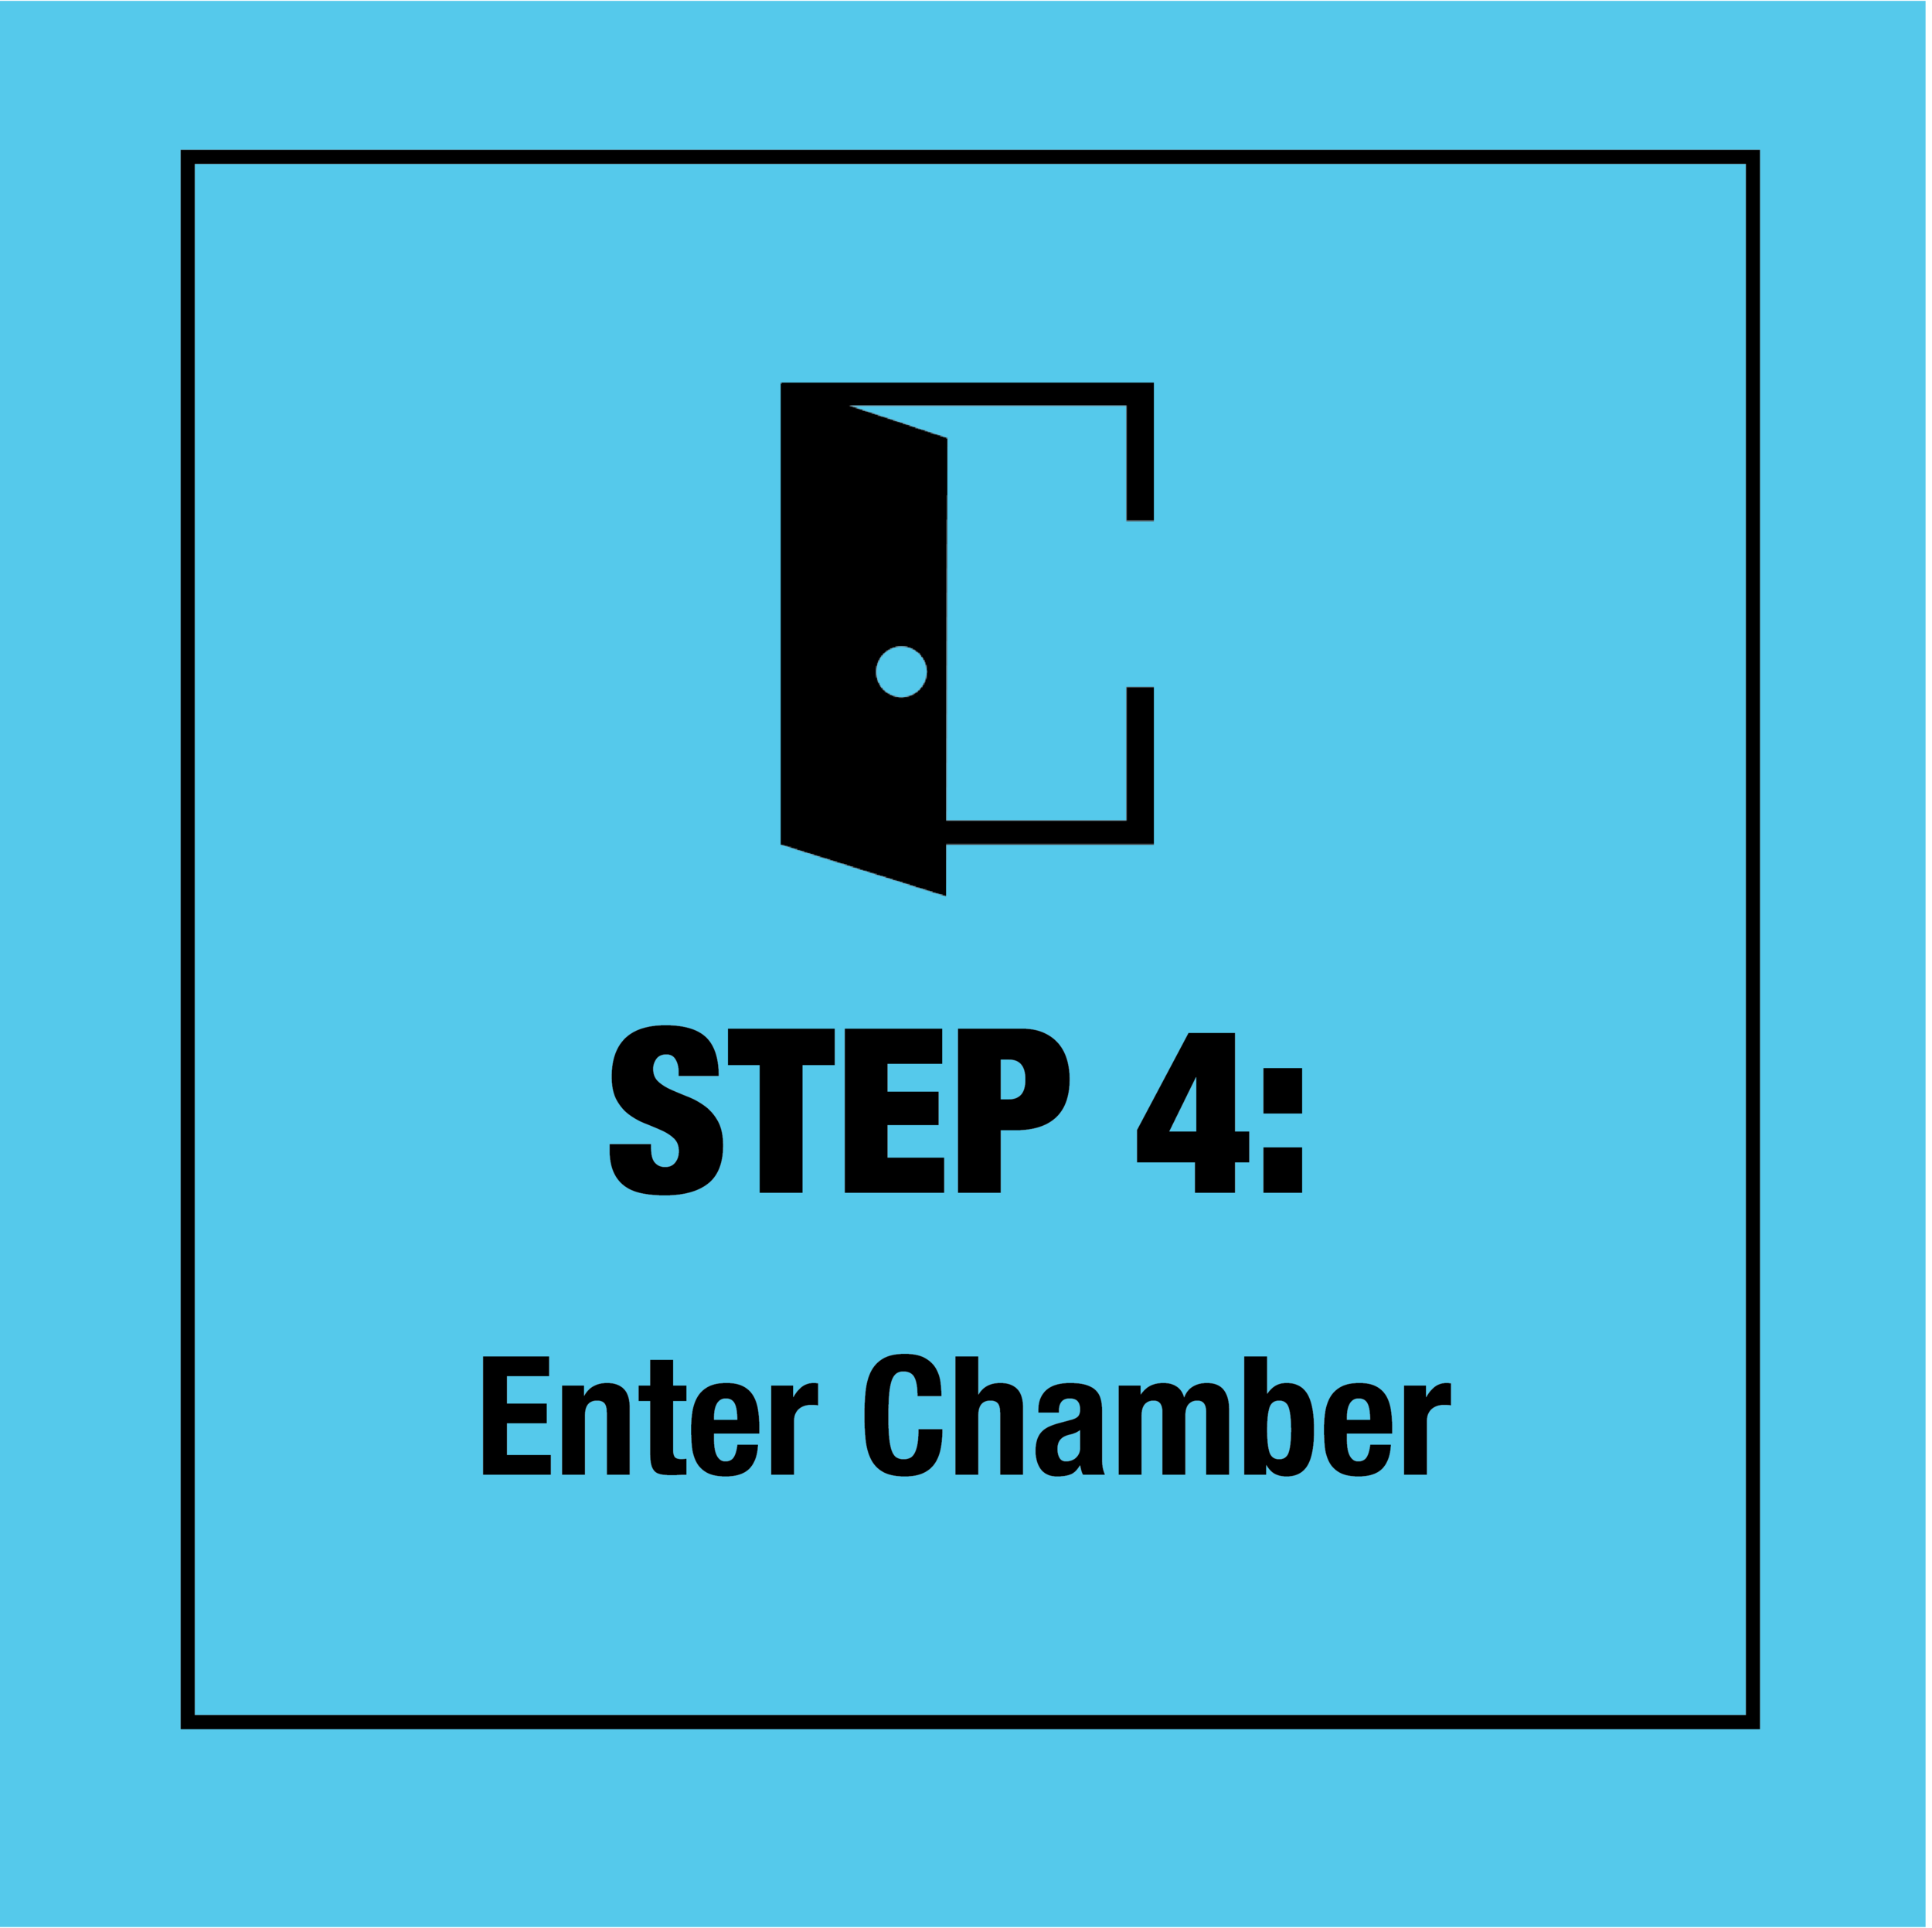 Enter the chamber, hand us your robe, and your three minutes start.